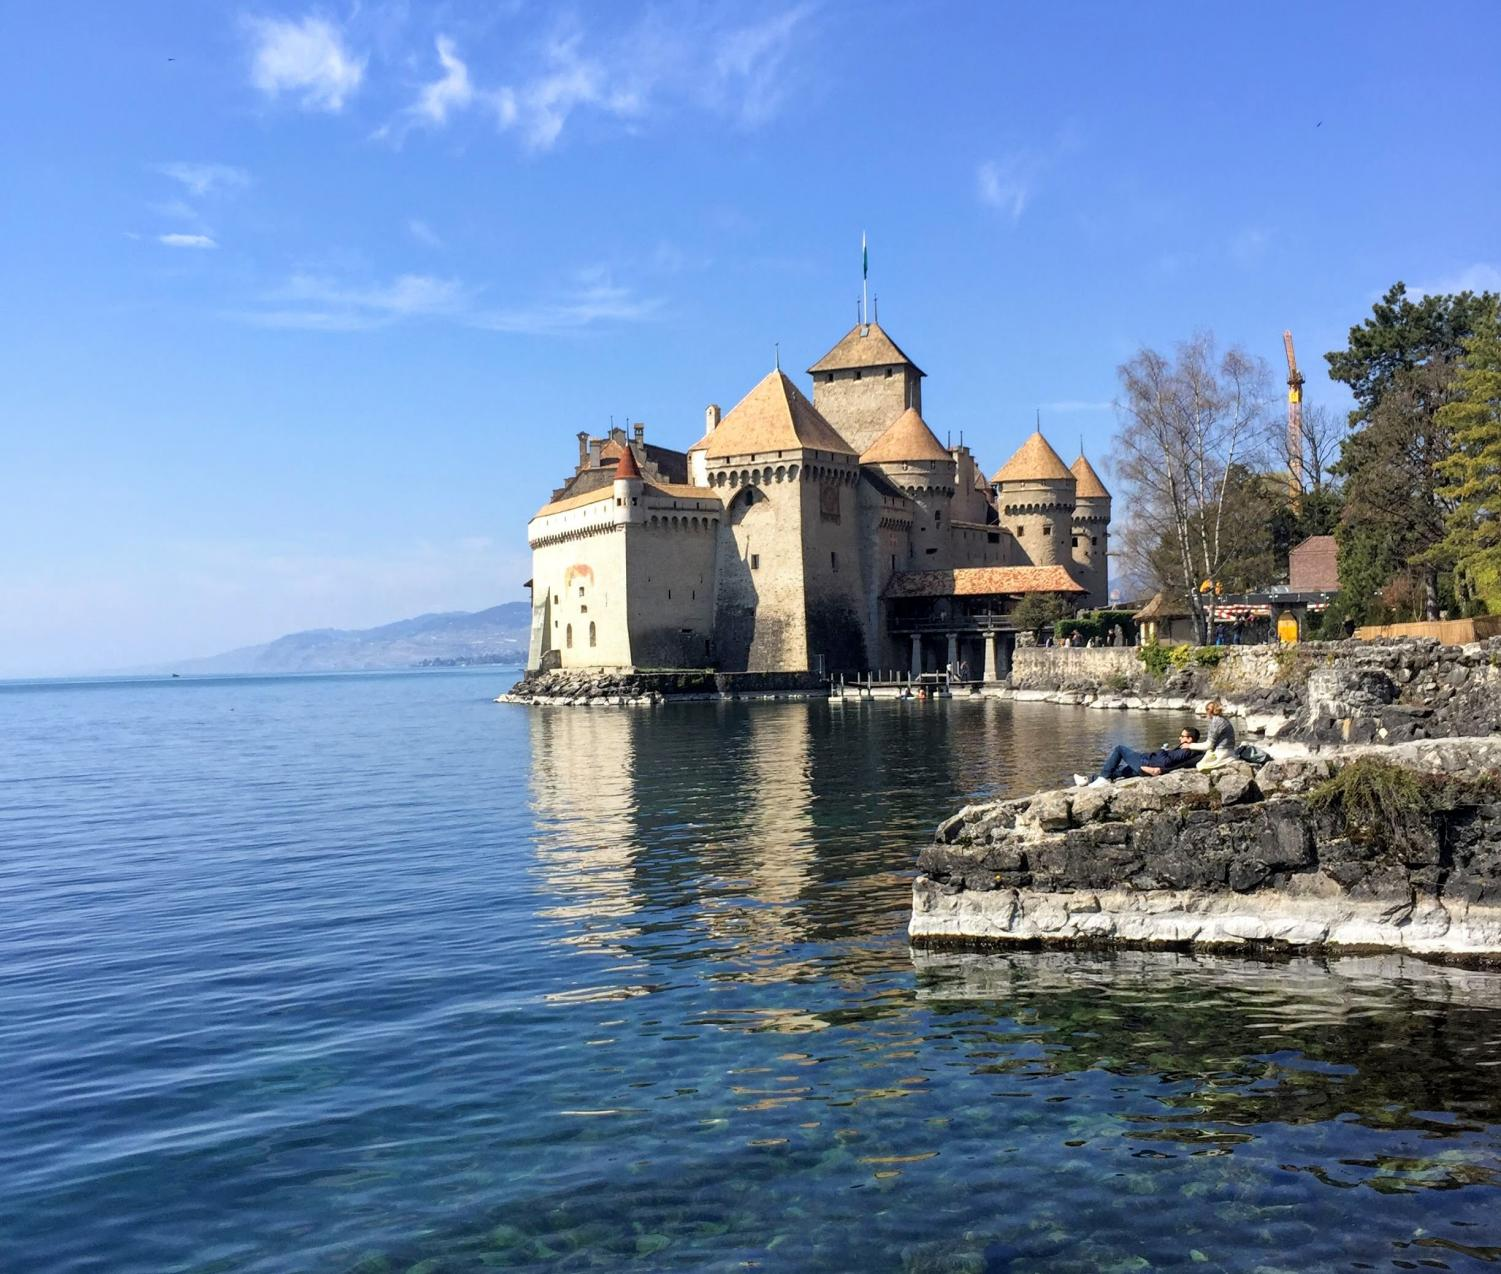 The Chateau of Chillon has beautiful views of Lake Geneva in Switzerland.